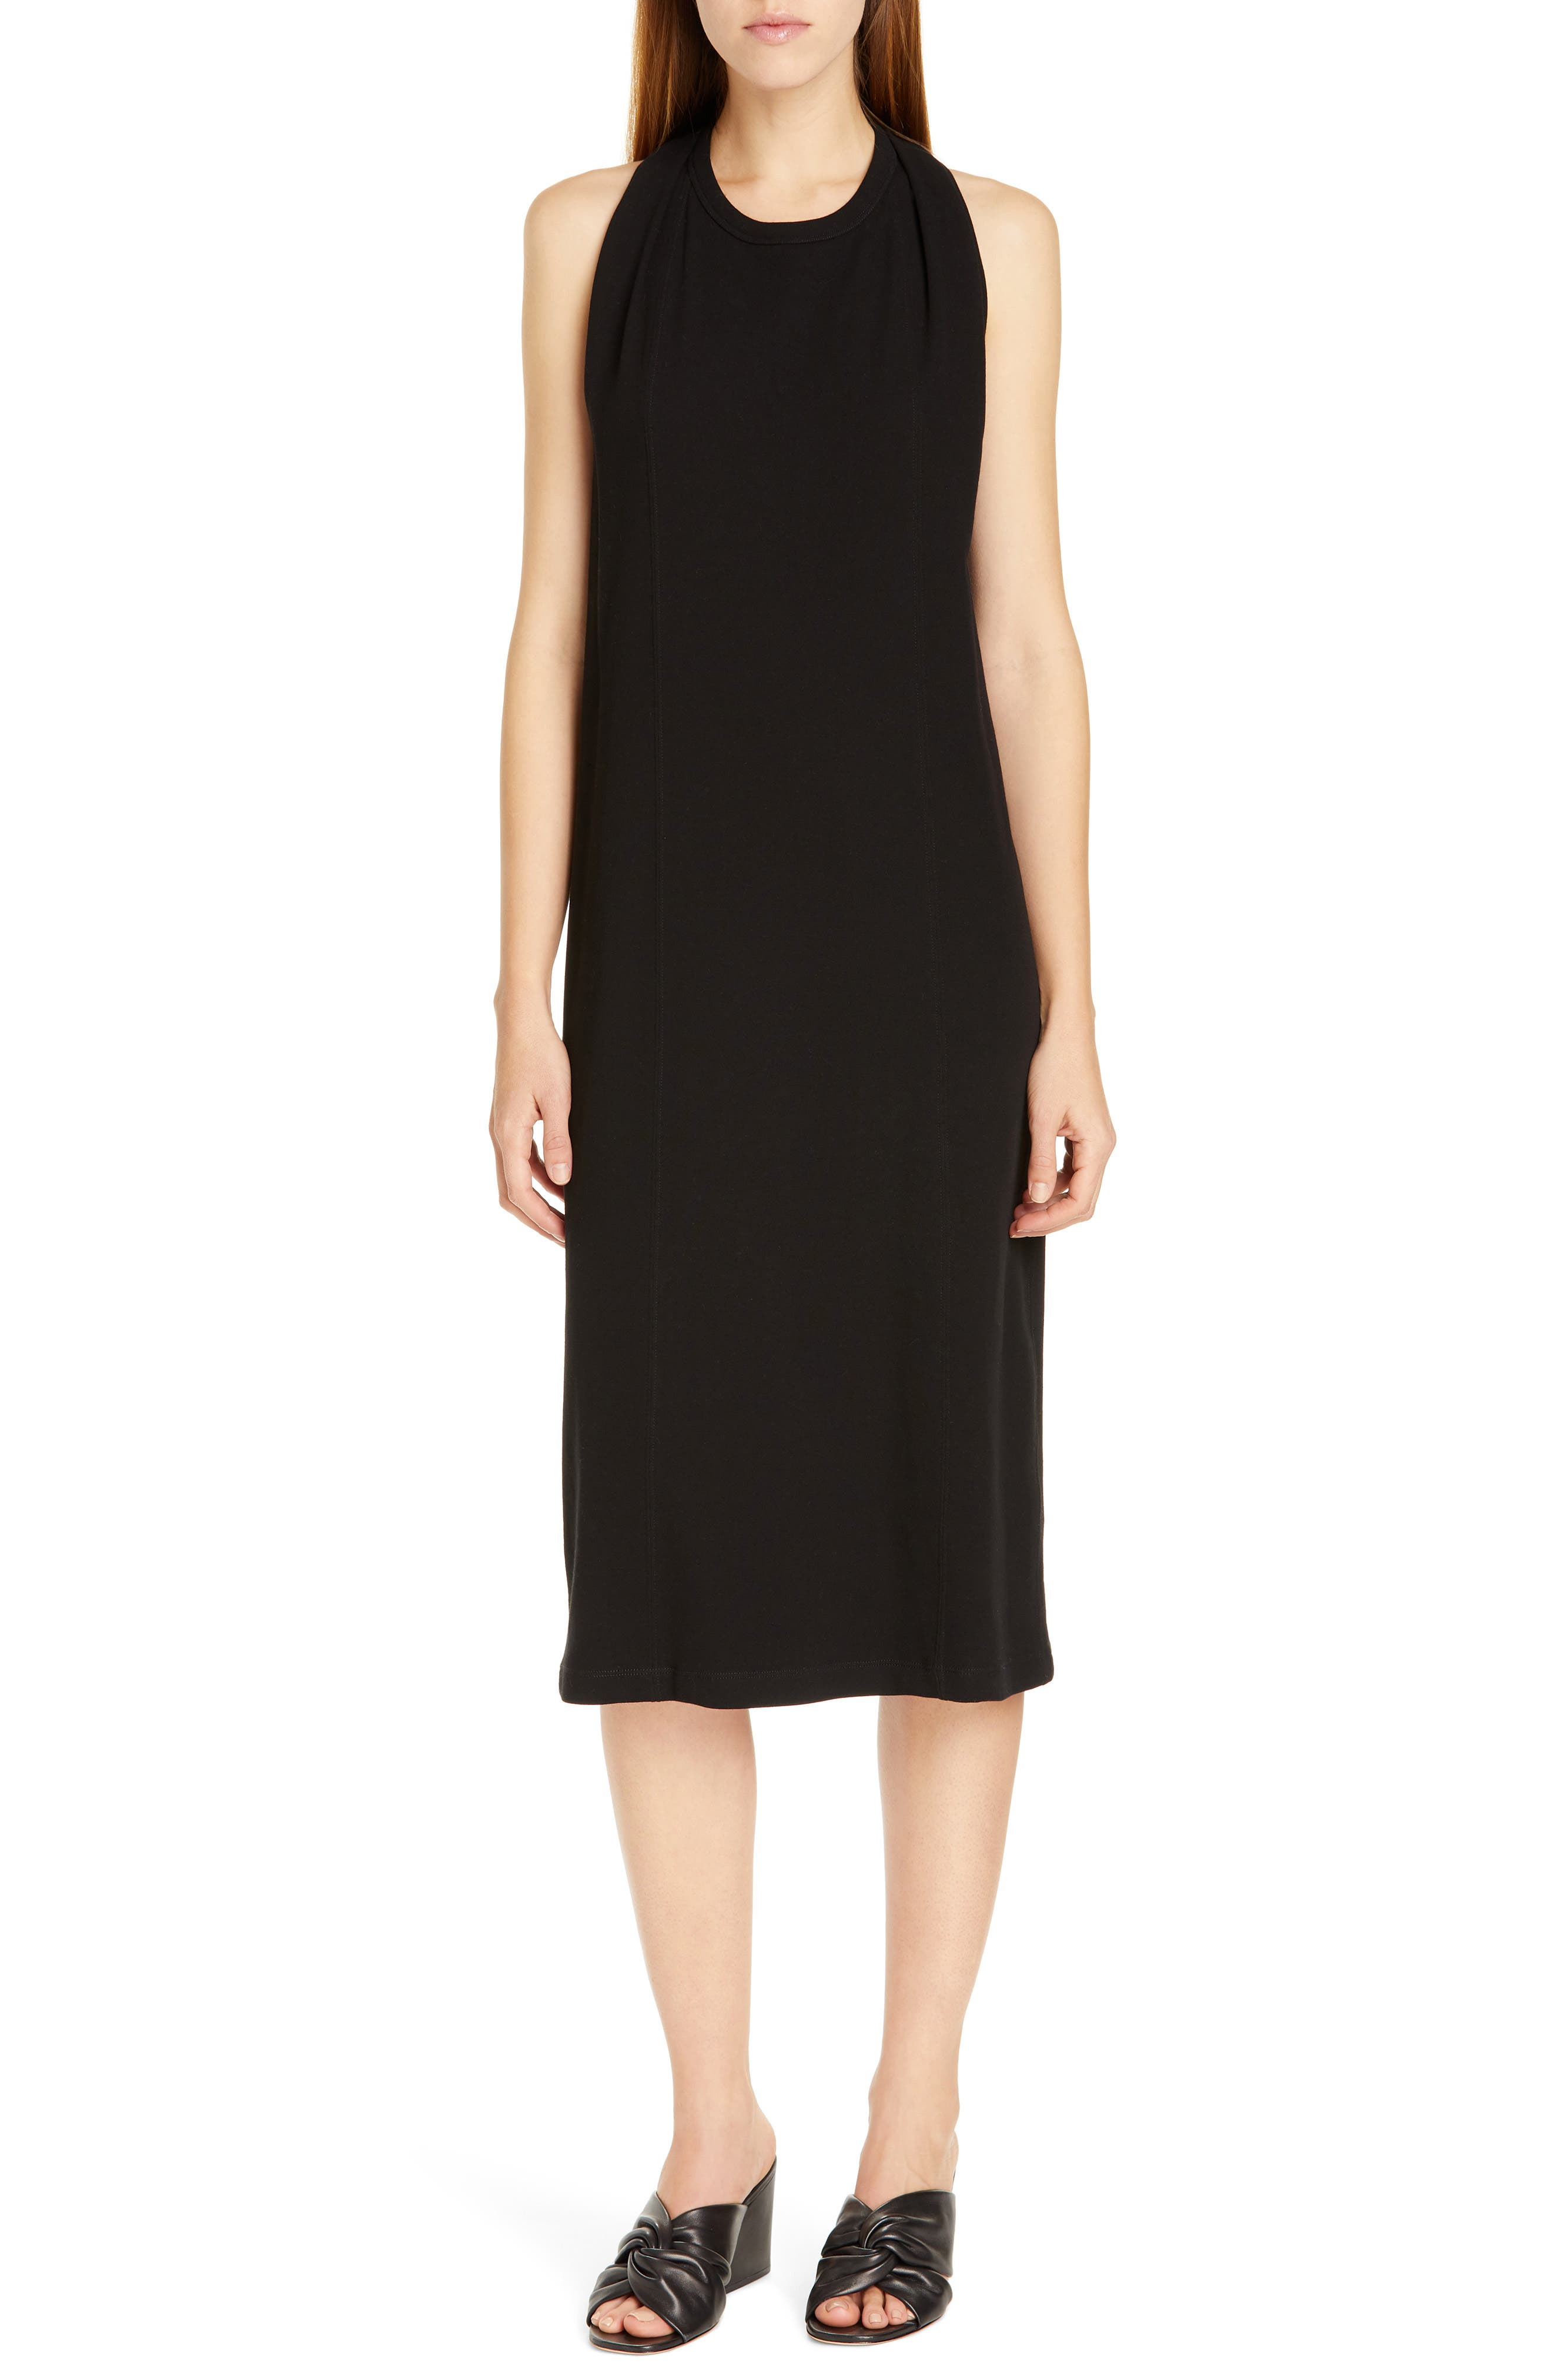 HELMUT LANG Halter Neck Cotton Jersey Dress, Main, color, BLACK